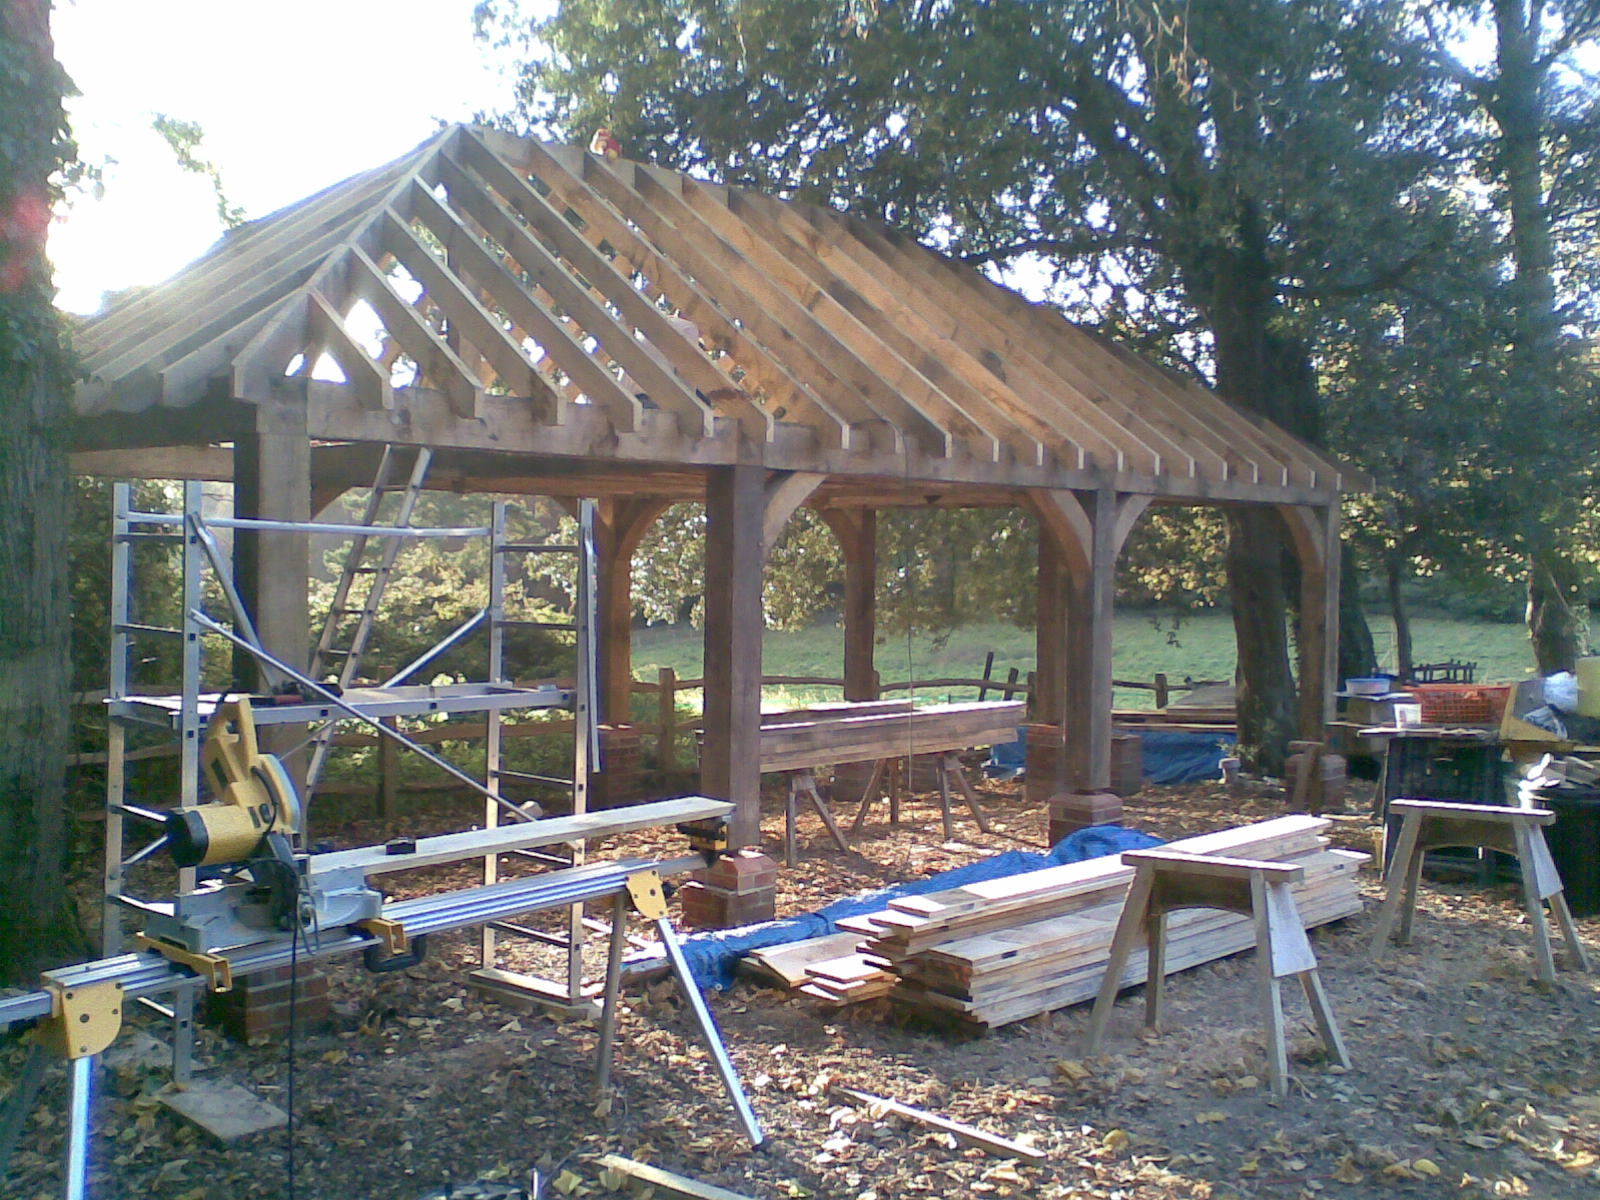 Bespoke Oak Framed Carport, Extension and Raised Decking